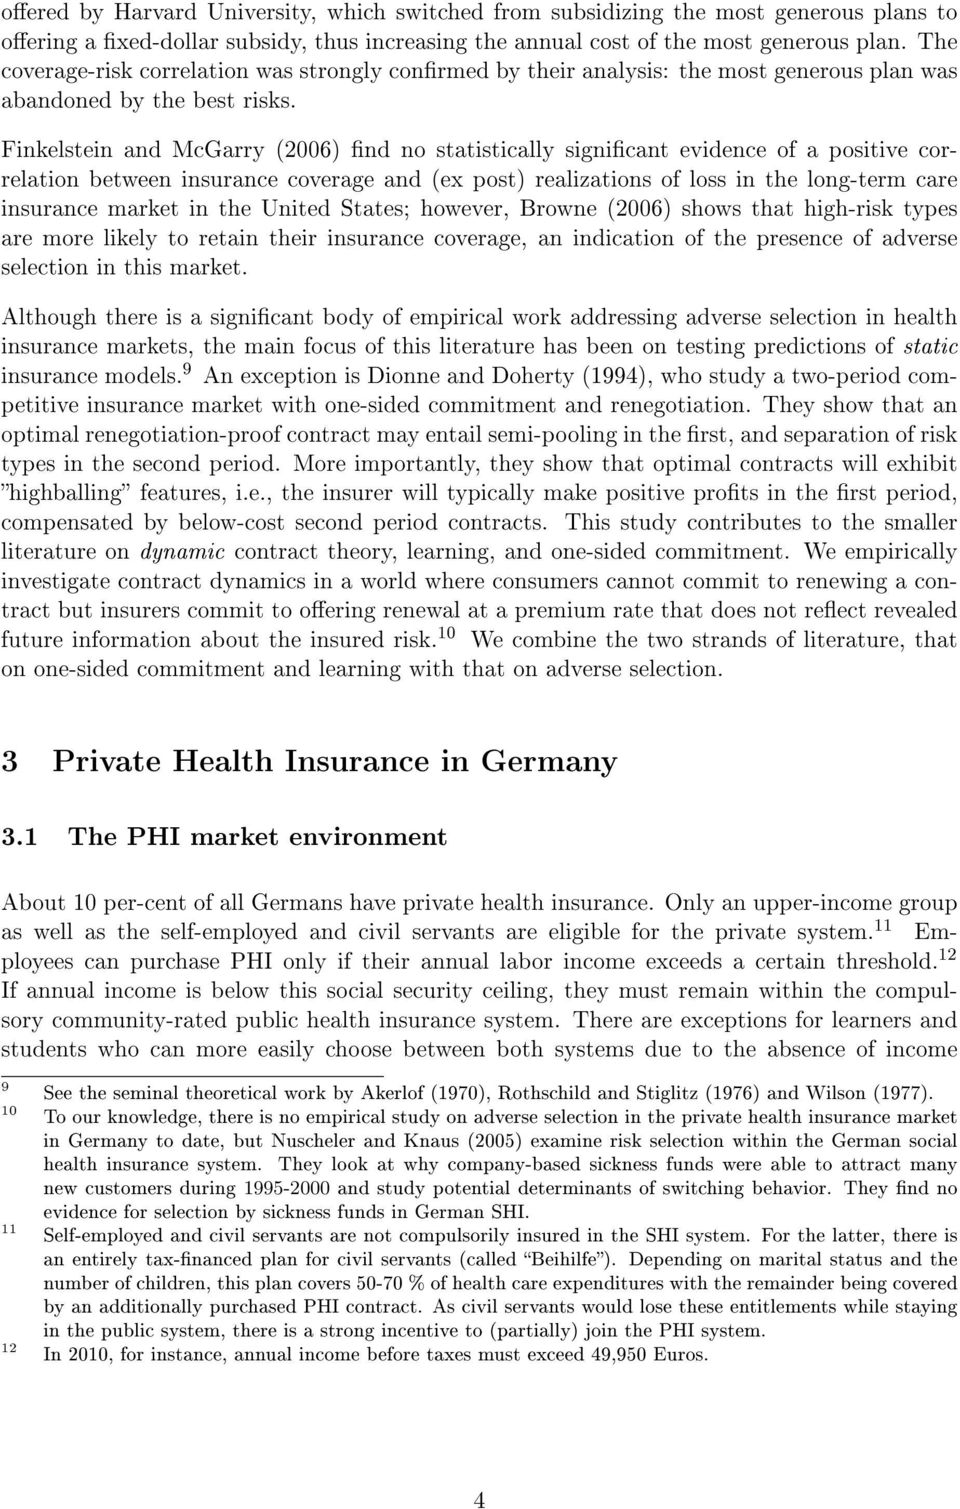 Finkelstein and McGarry (2006) nd no statistically signicant evidence of a positive correlation between insurance coverage and (ex post) realizations of loss in the long-term care insurance market in